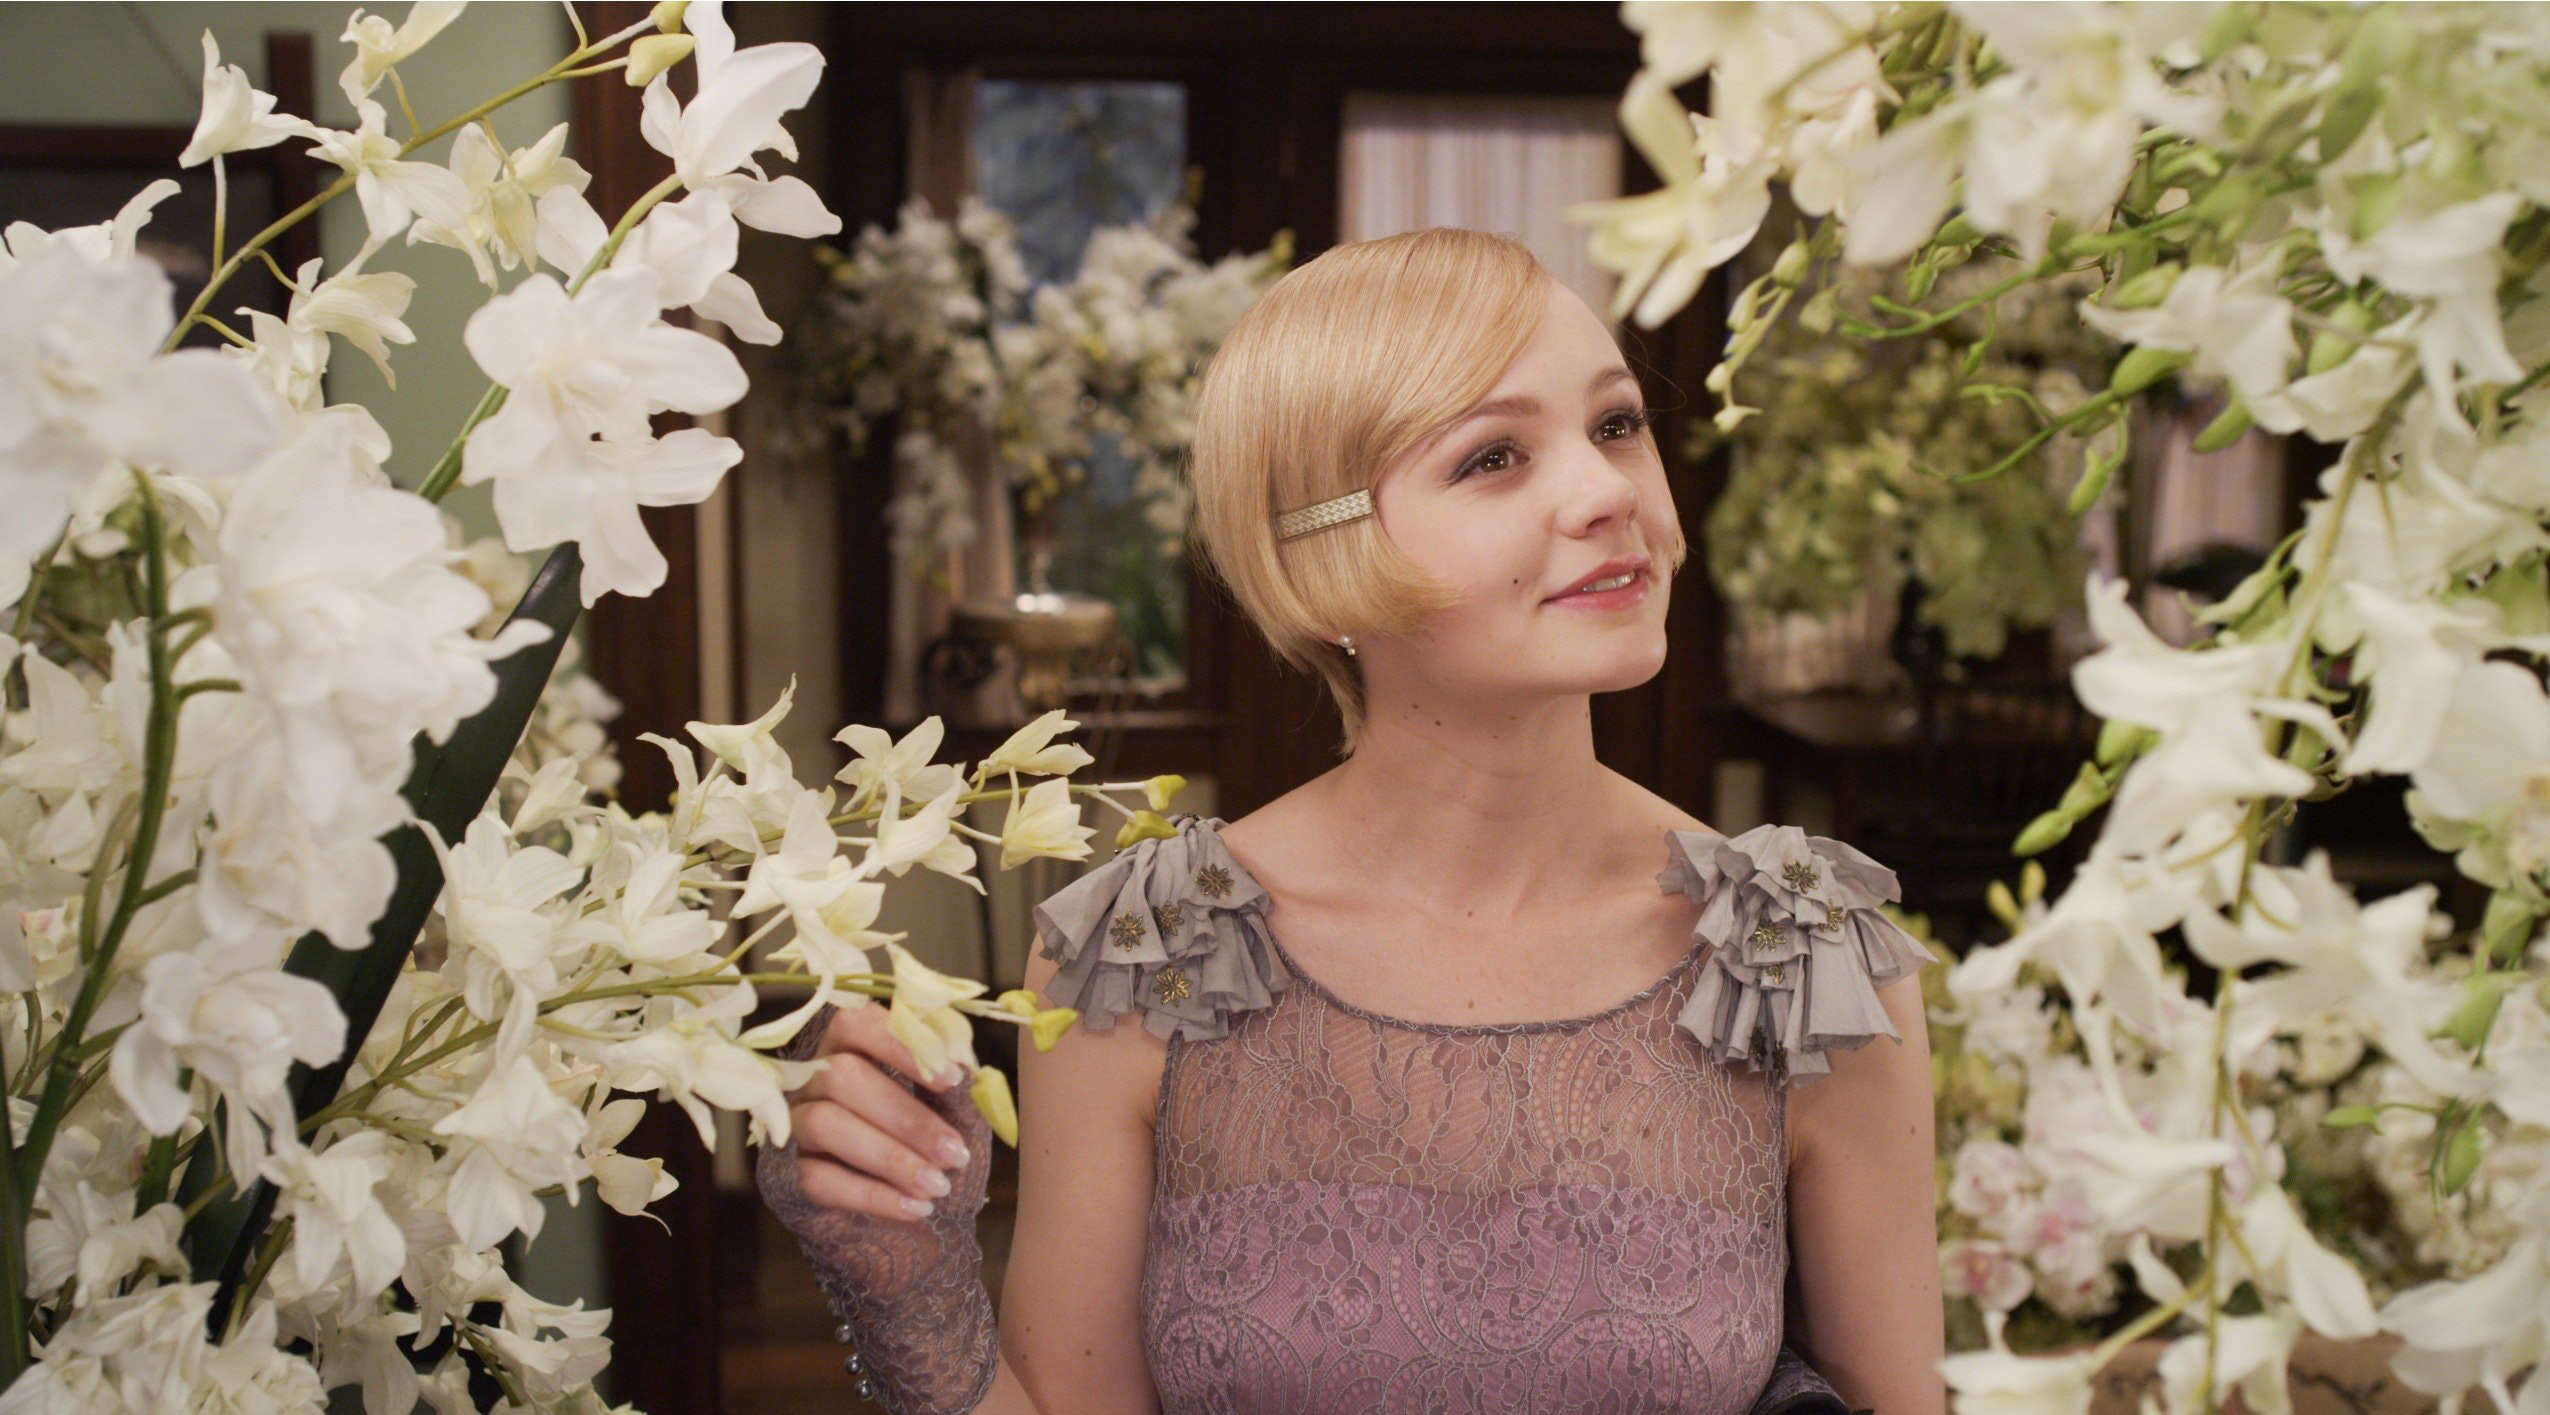 Gatsby Great daisy dress exclusive photo